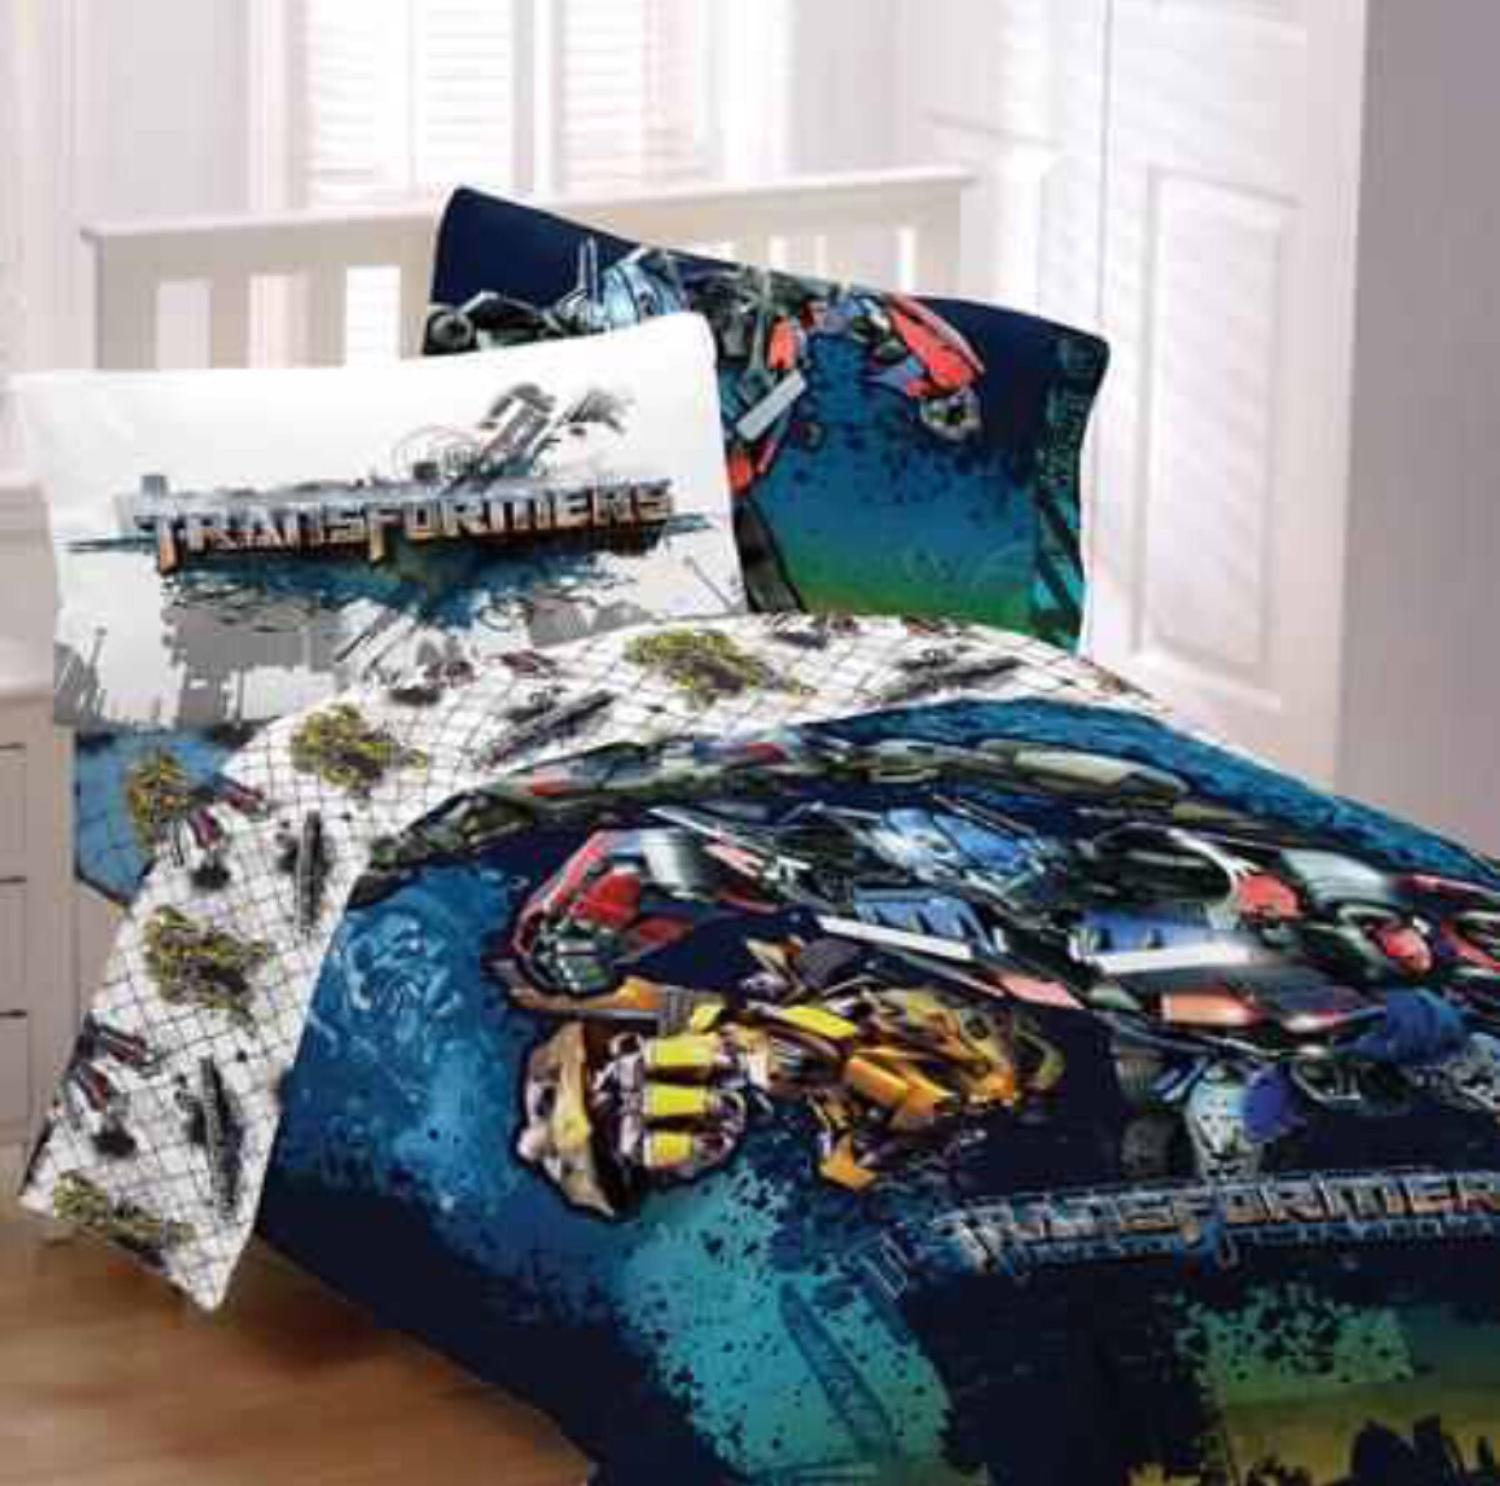 Transformers Comforter Set Full Size